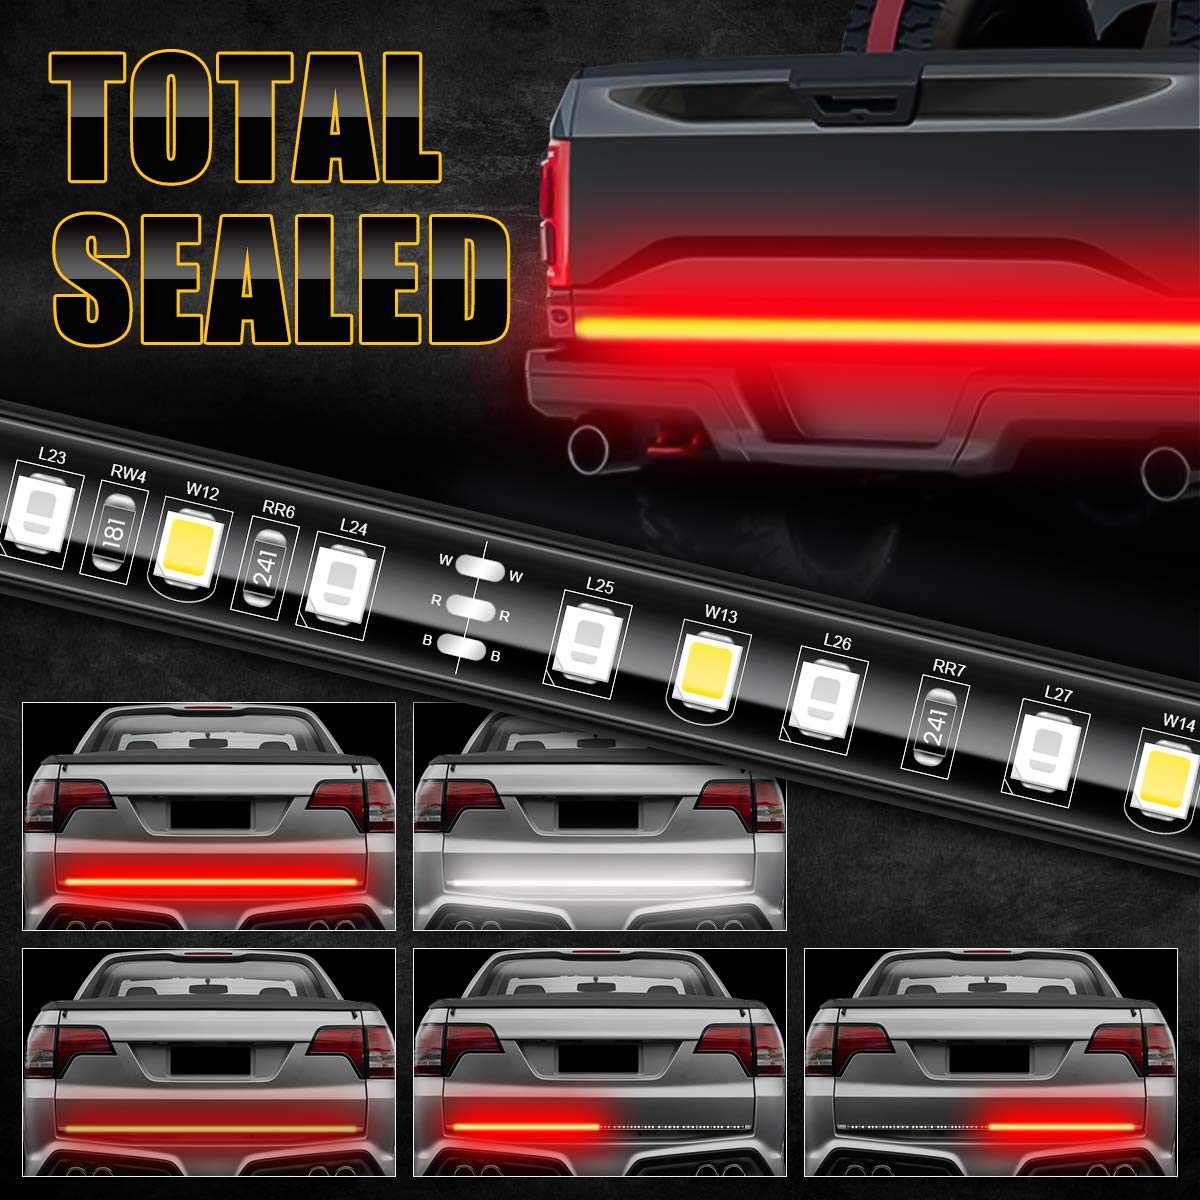 "AMBOTHER LED Tailgate Light Bar 49"" Truck Brake Flexible Strip Trailer Tail Lights Turn Signal Reverse Back Up Stop Running Light for Pickup RV SUV Van Car Jeep, Red/White, No Drill Needed"